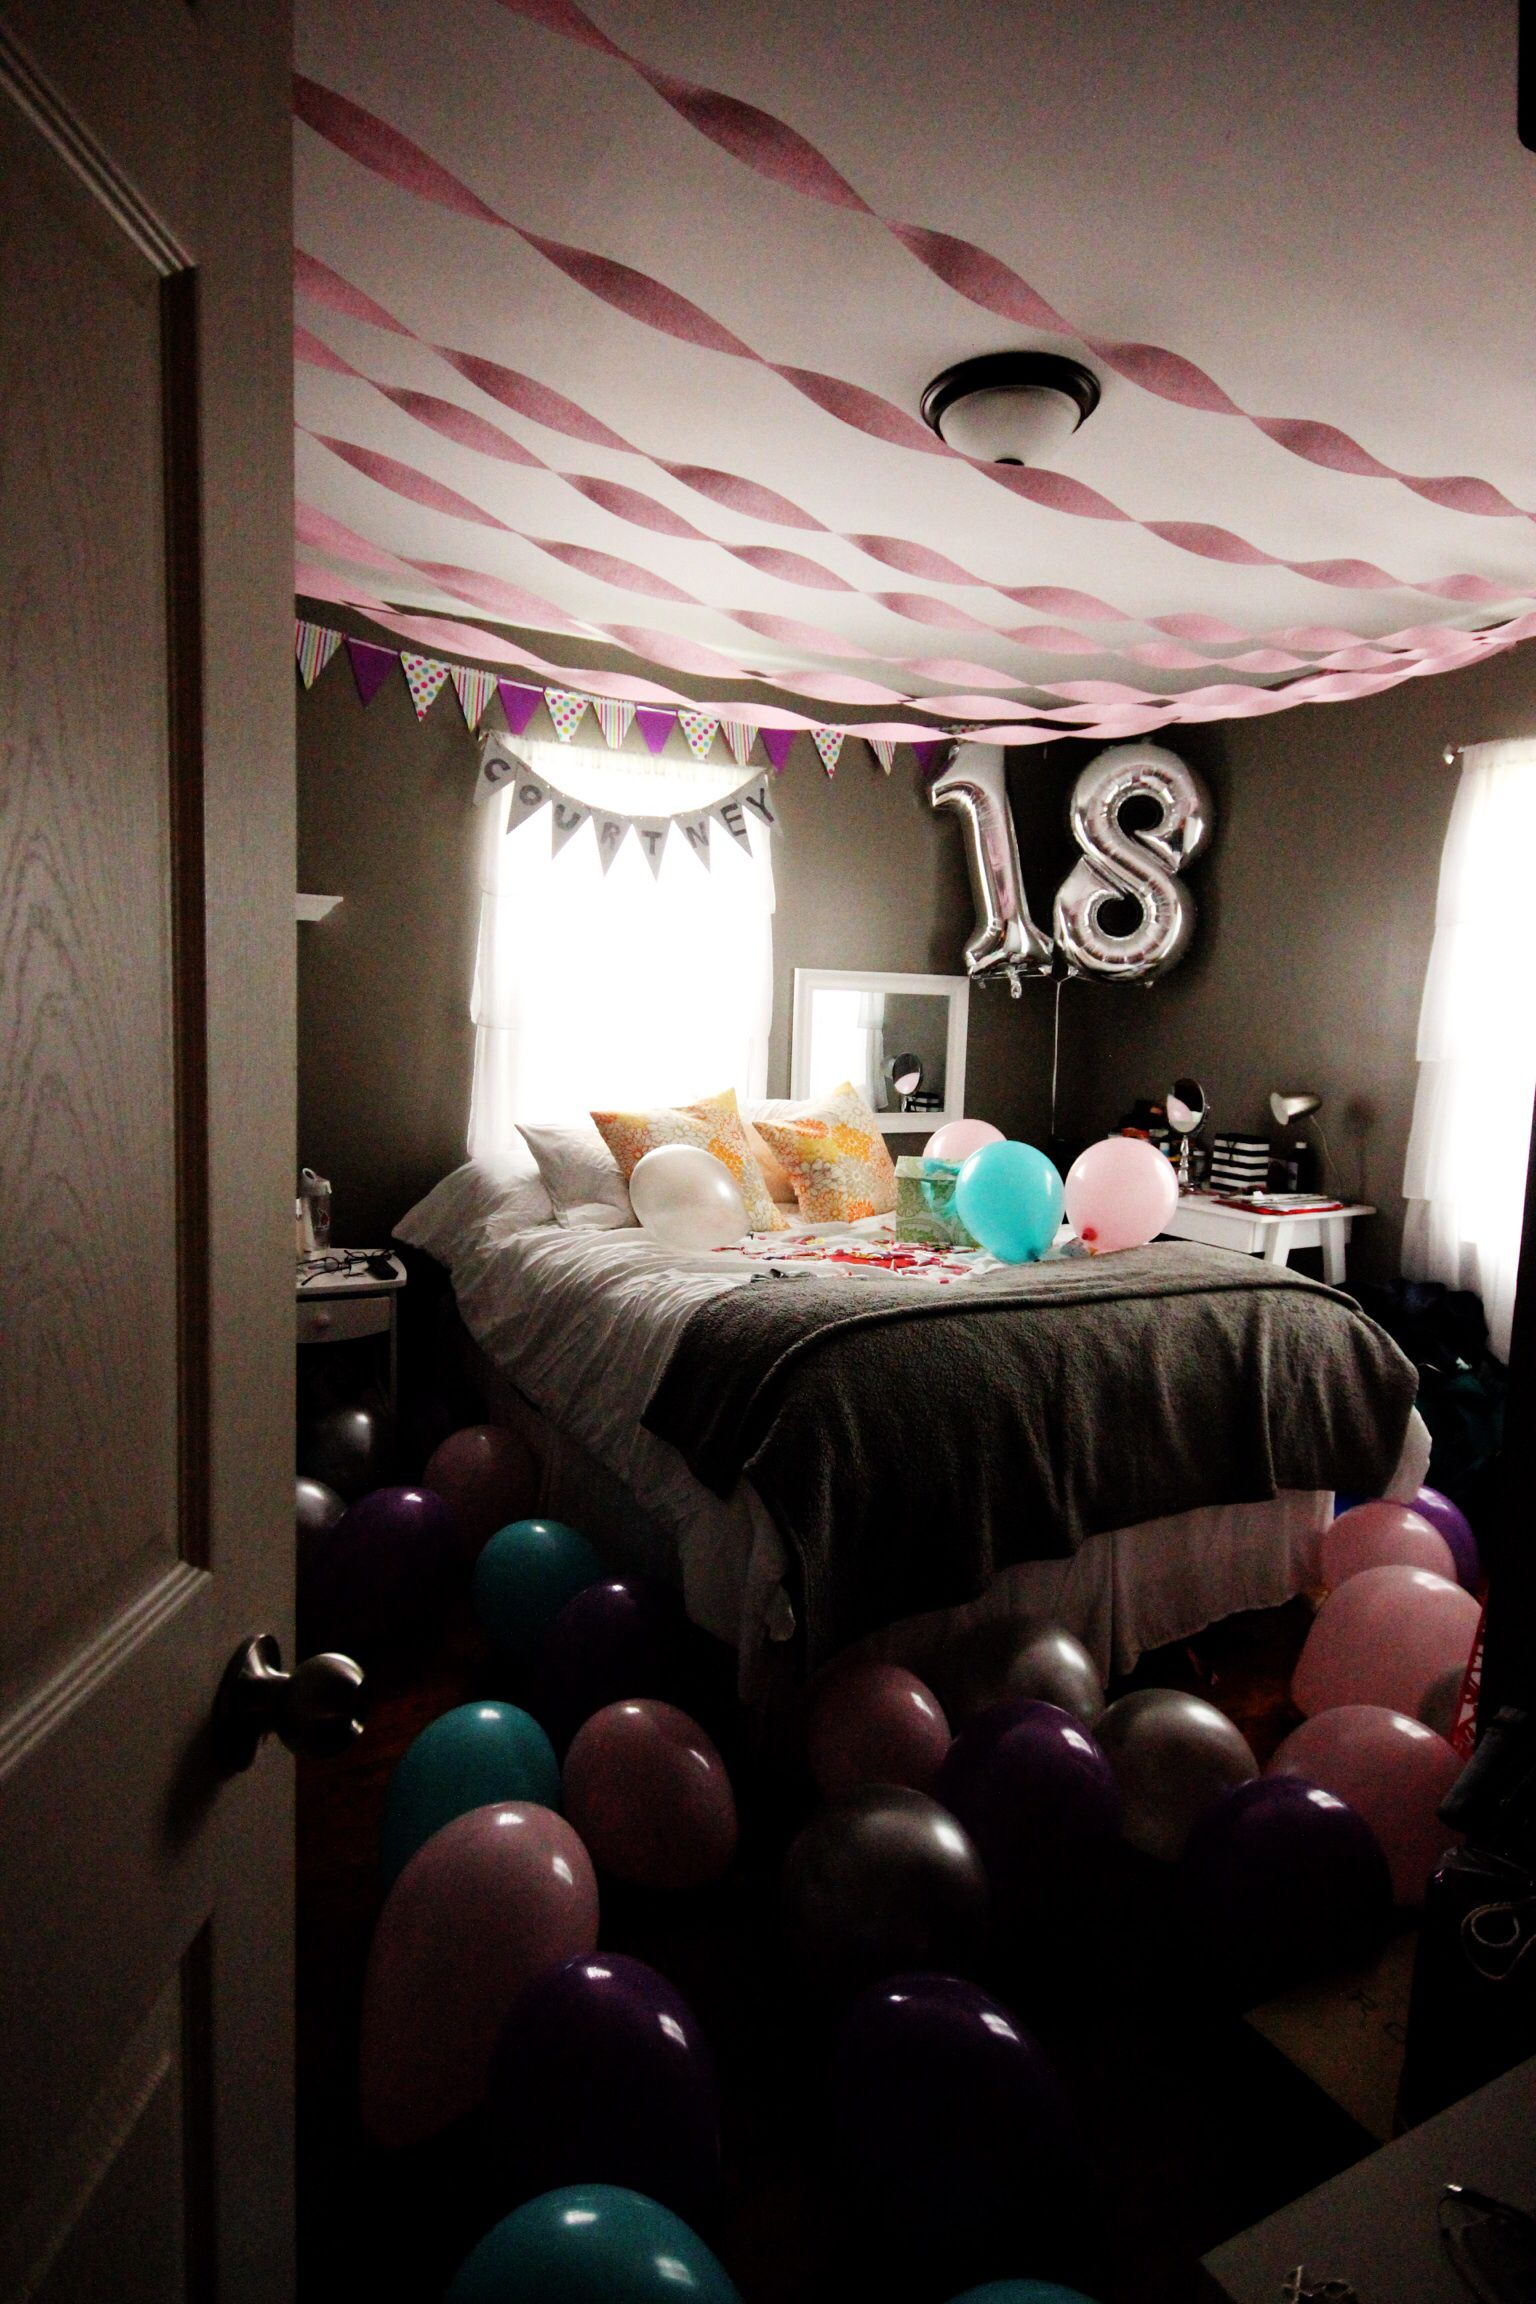 Bedroom Surprise For Birthday It S Me Kiersten Marie Pinterest